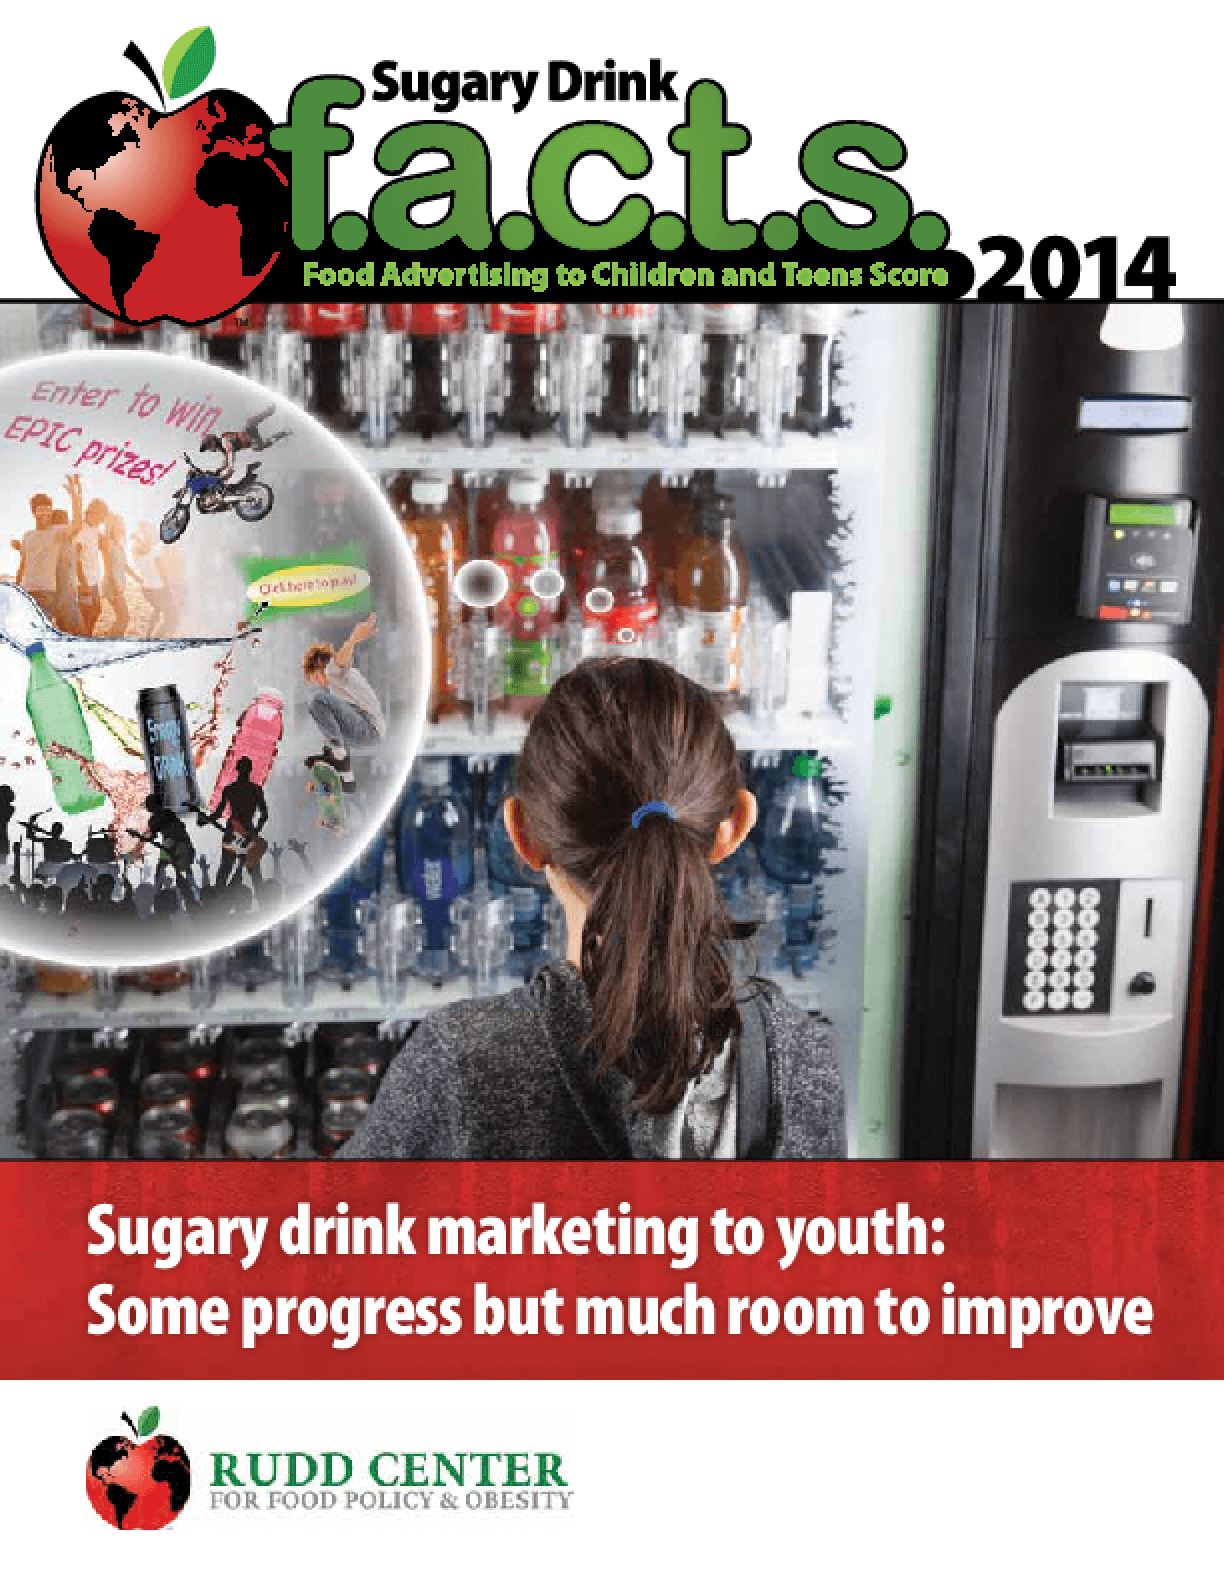 Sugary Drink FACTS 2014: Some Progress but Much Room for Improvement in Marketing to Youth